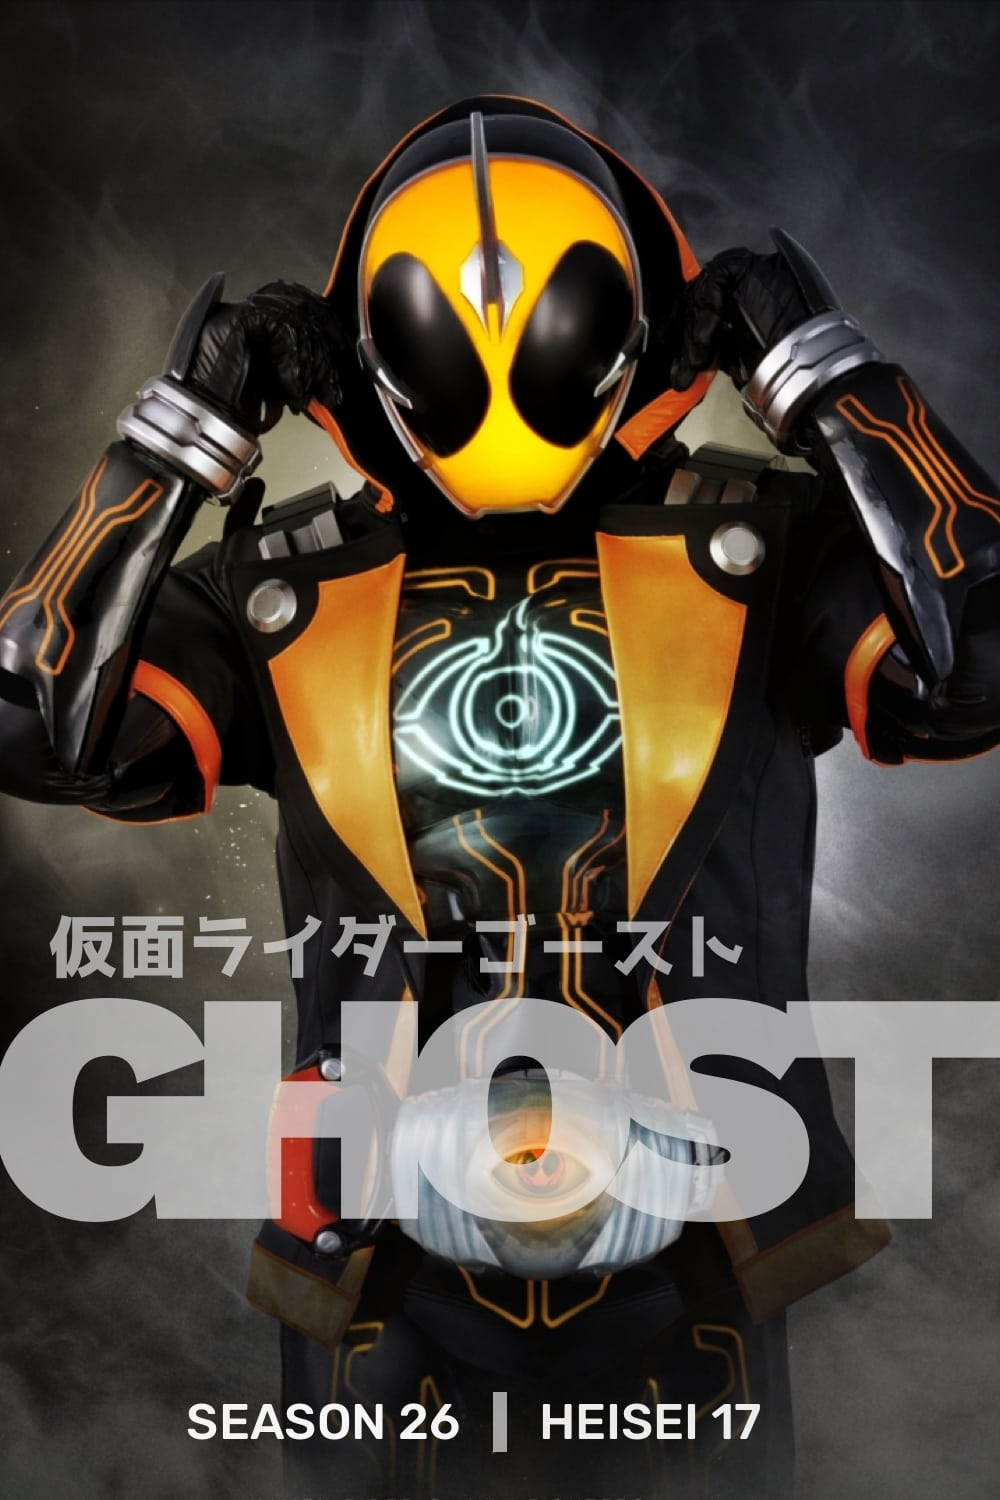 Kamen Rider - Season 21 Episode 2 : Greed, Ice Candy, Present Season 26